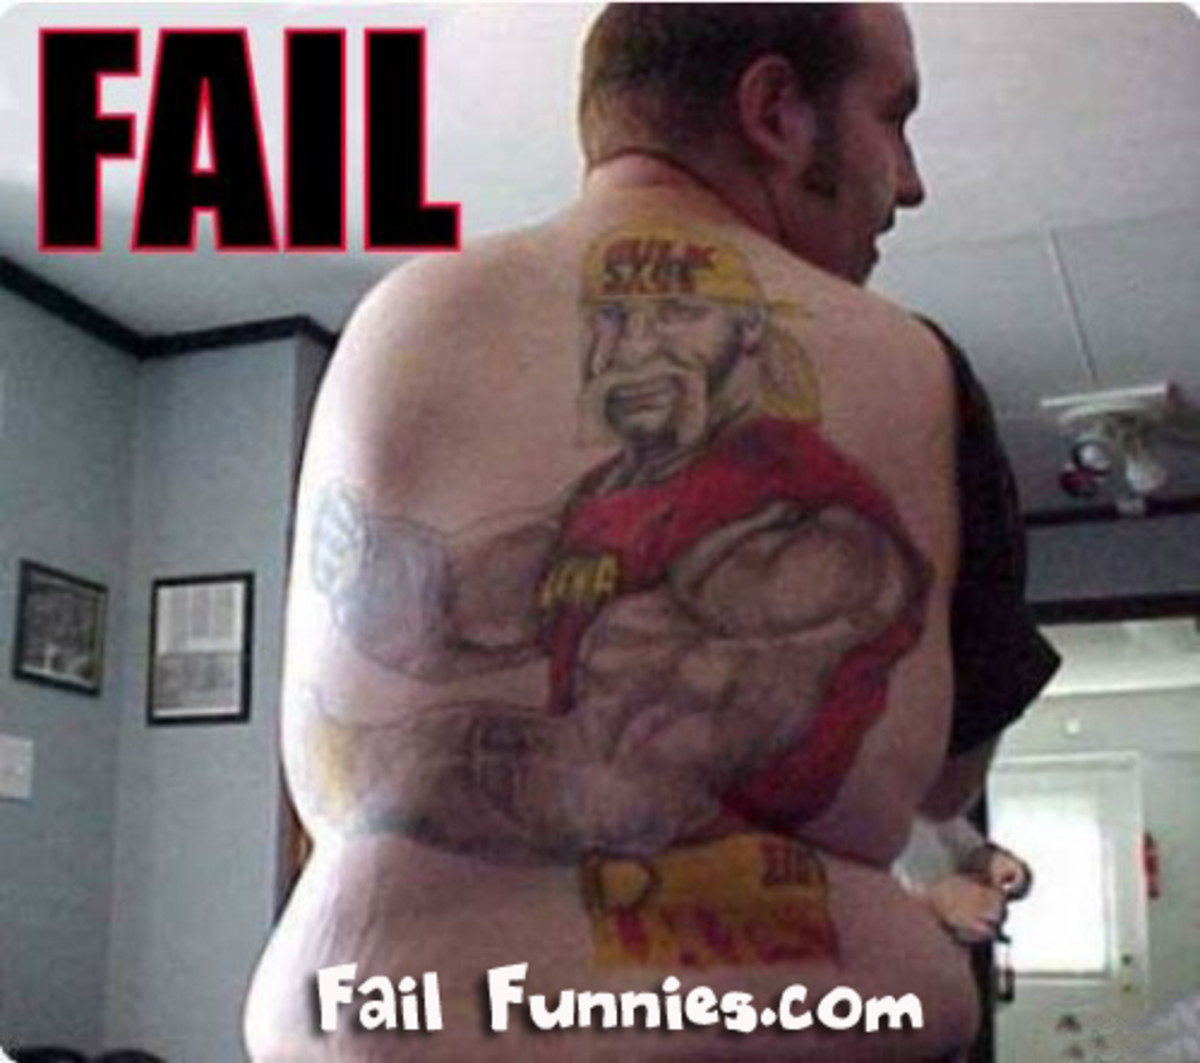 If I was Hulk Hogan, I'd sue and then make him go to Jenny Craig as part of the restitution.